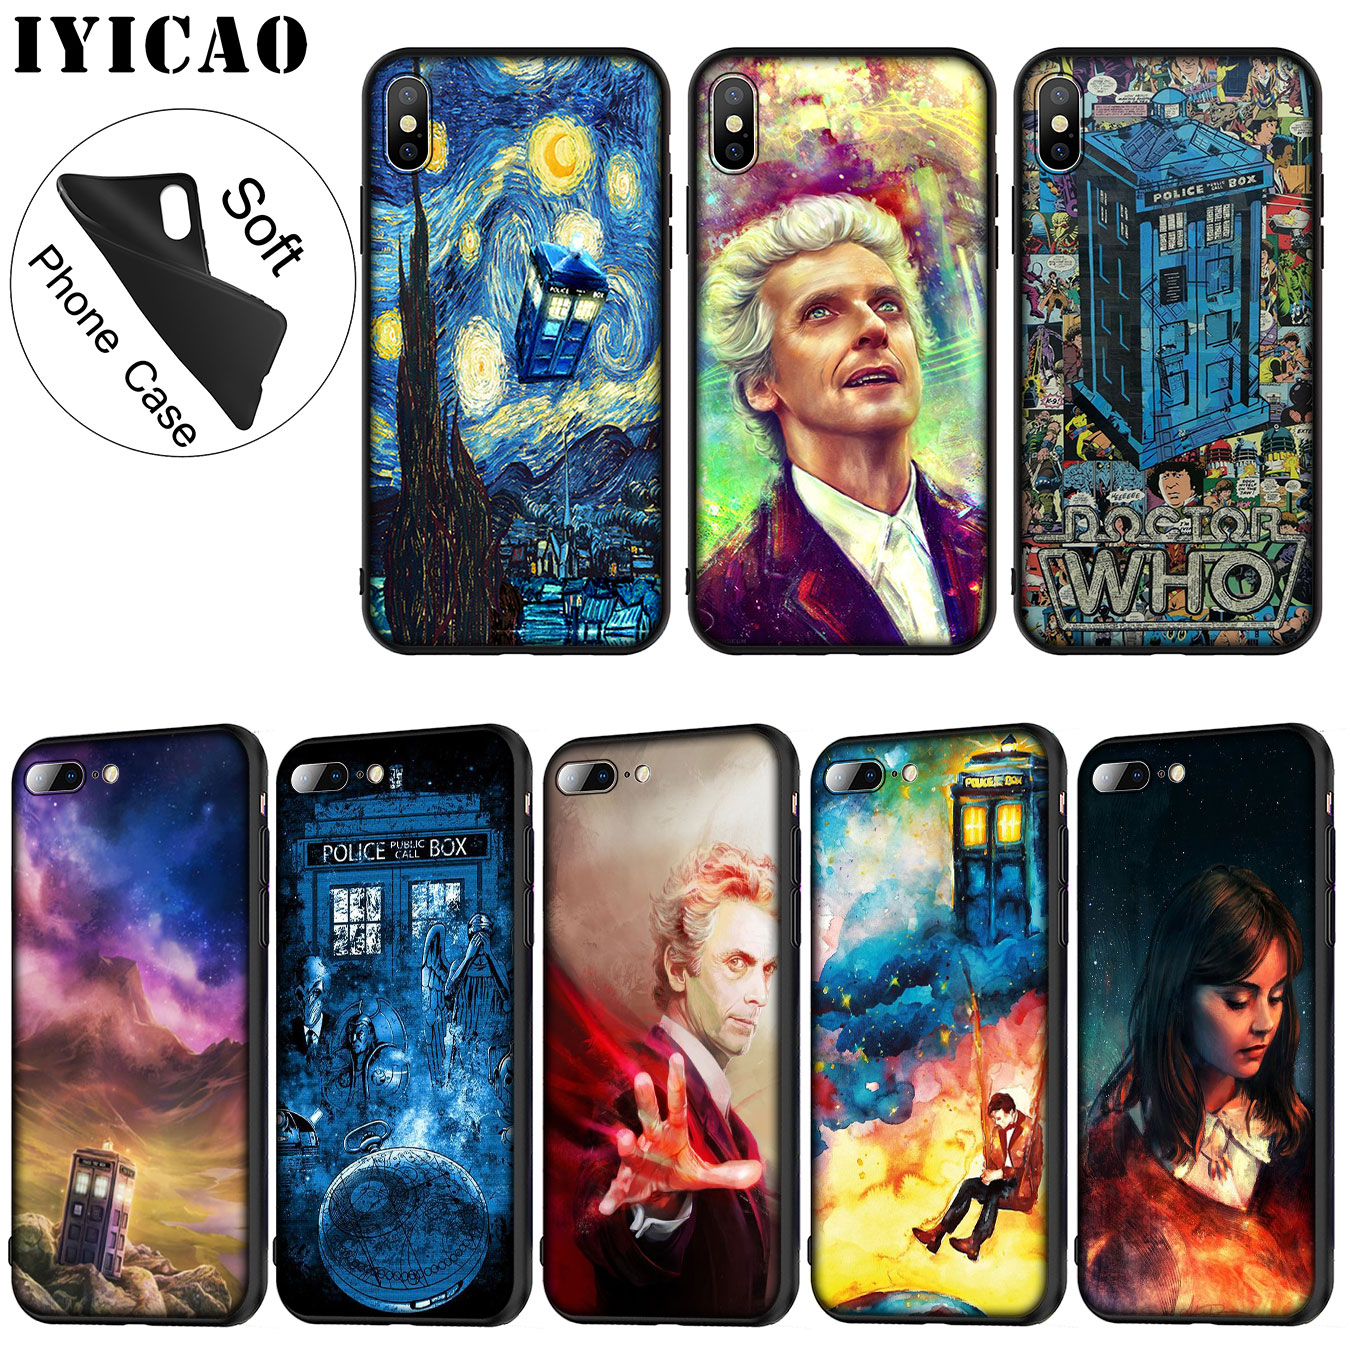 Phone Bags & Cases Buy Cheap Iyicao Tardis Box Doctor Who Soft Silicone Phone Case For Iphone Xr X Xs Max 6 6s 7 8 Plus 5 5s Se Tpu Black Cover Consumers First